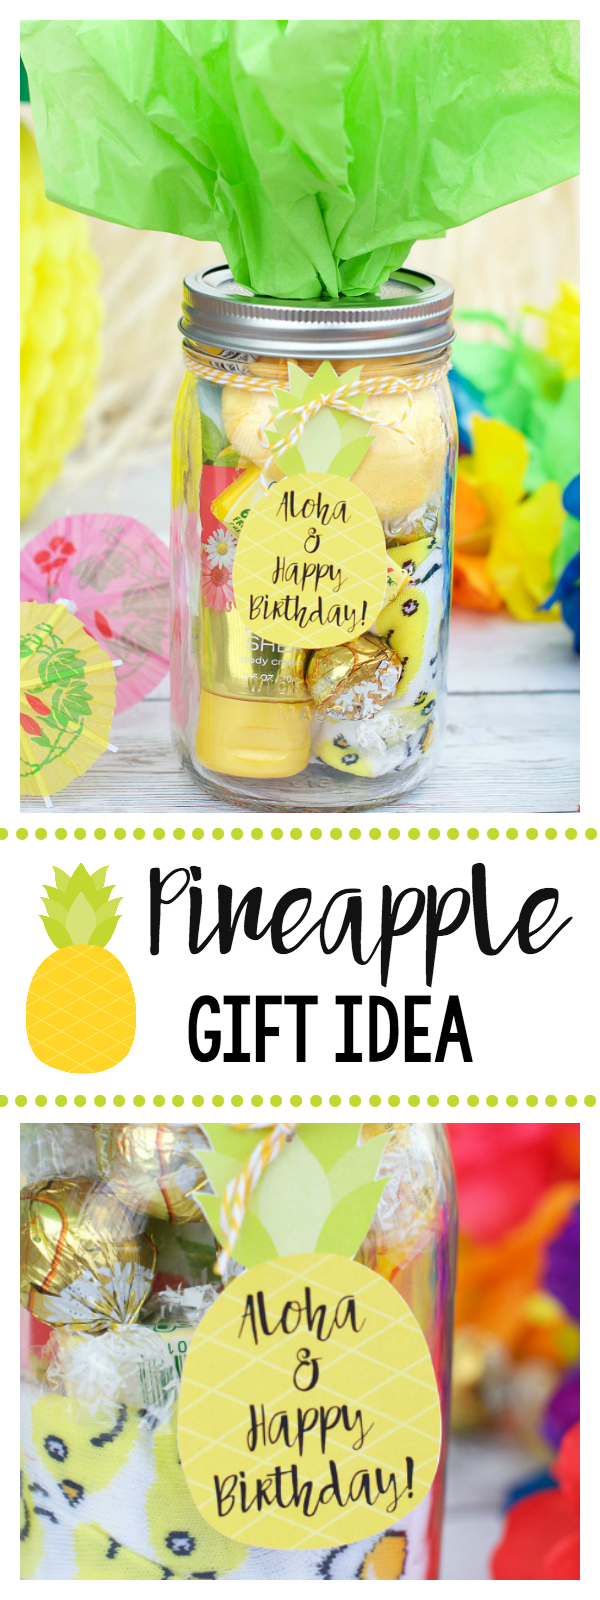 Cute Pineapple Themed Gift Idea-Great for Birthdays or as a Thank You Gift Idea